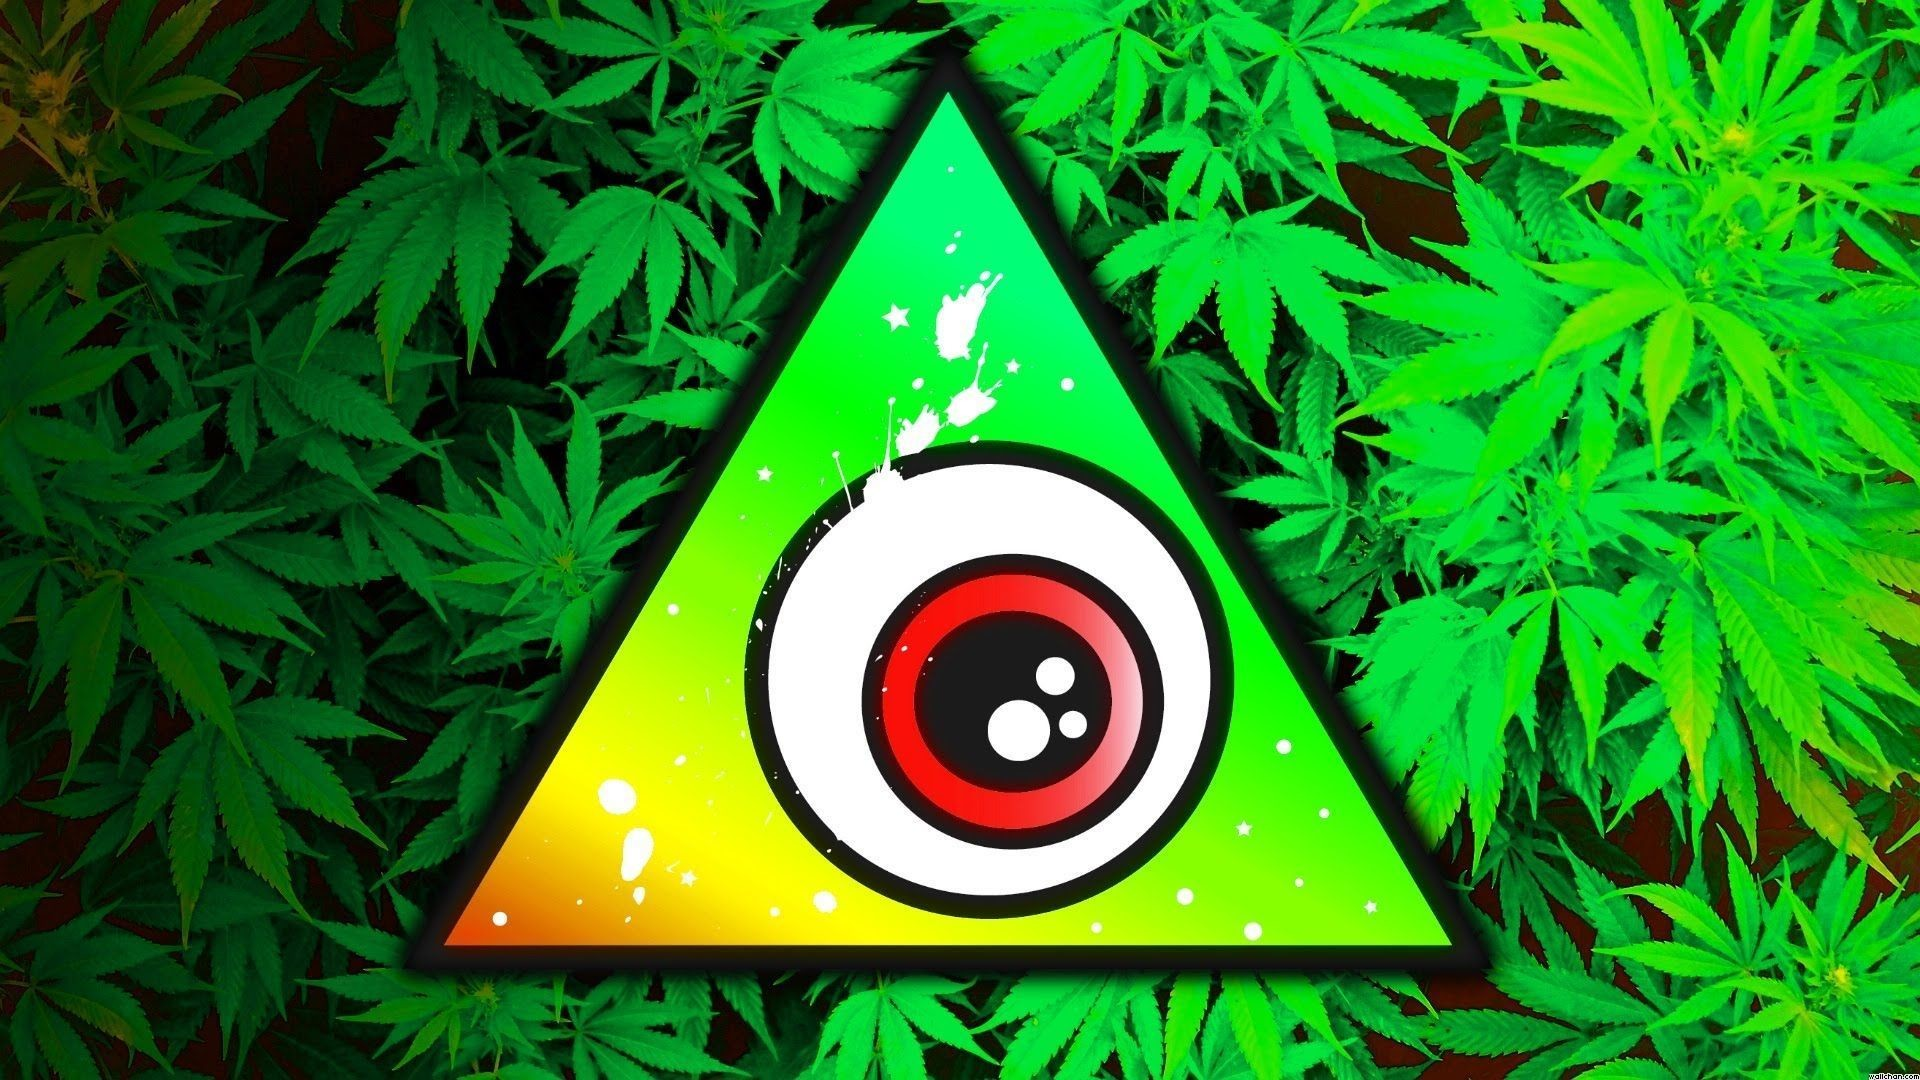 Stoner Wallpaper Iphone 52 Images